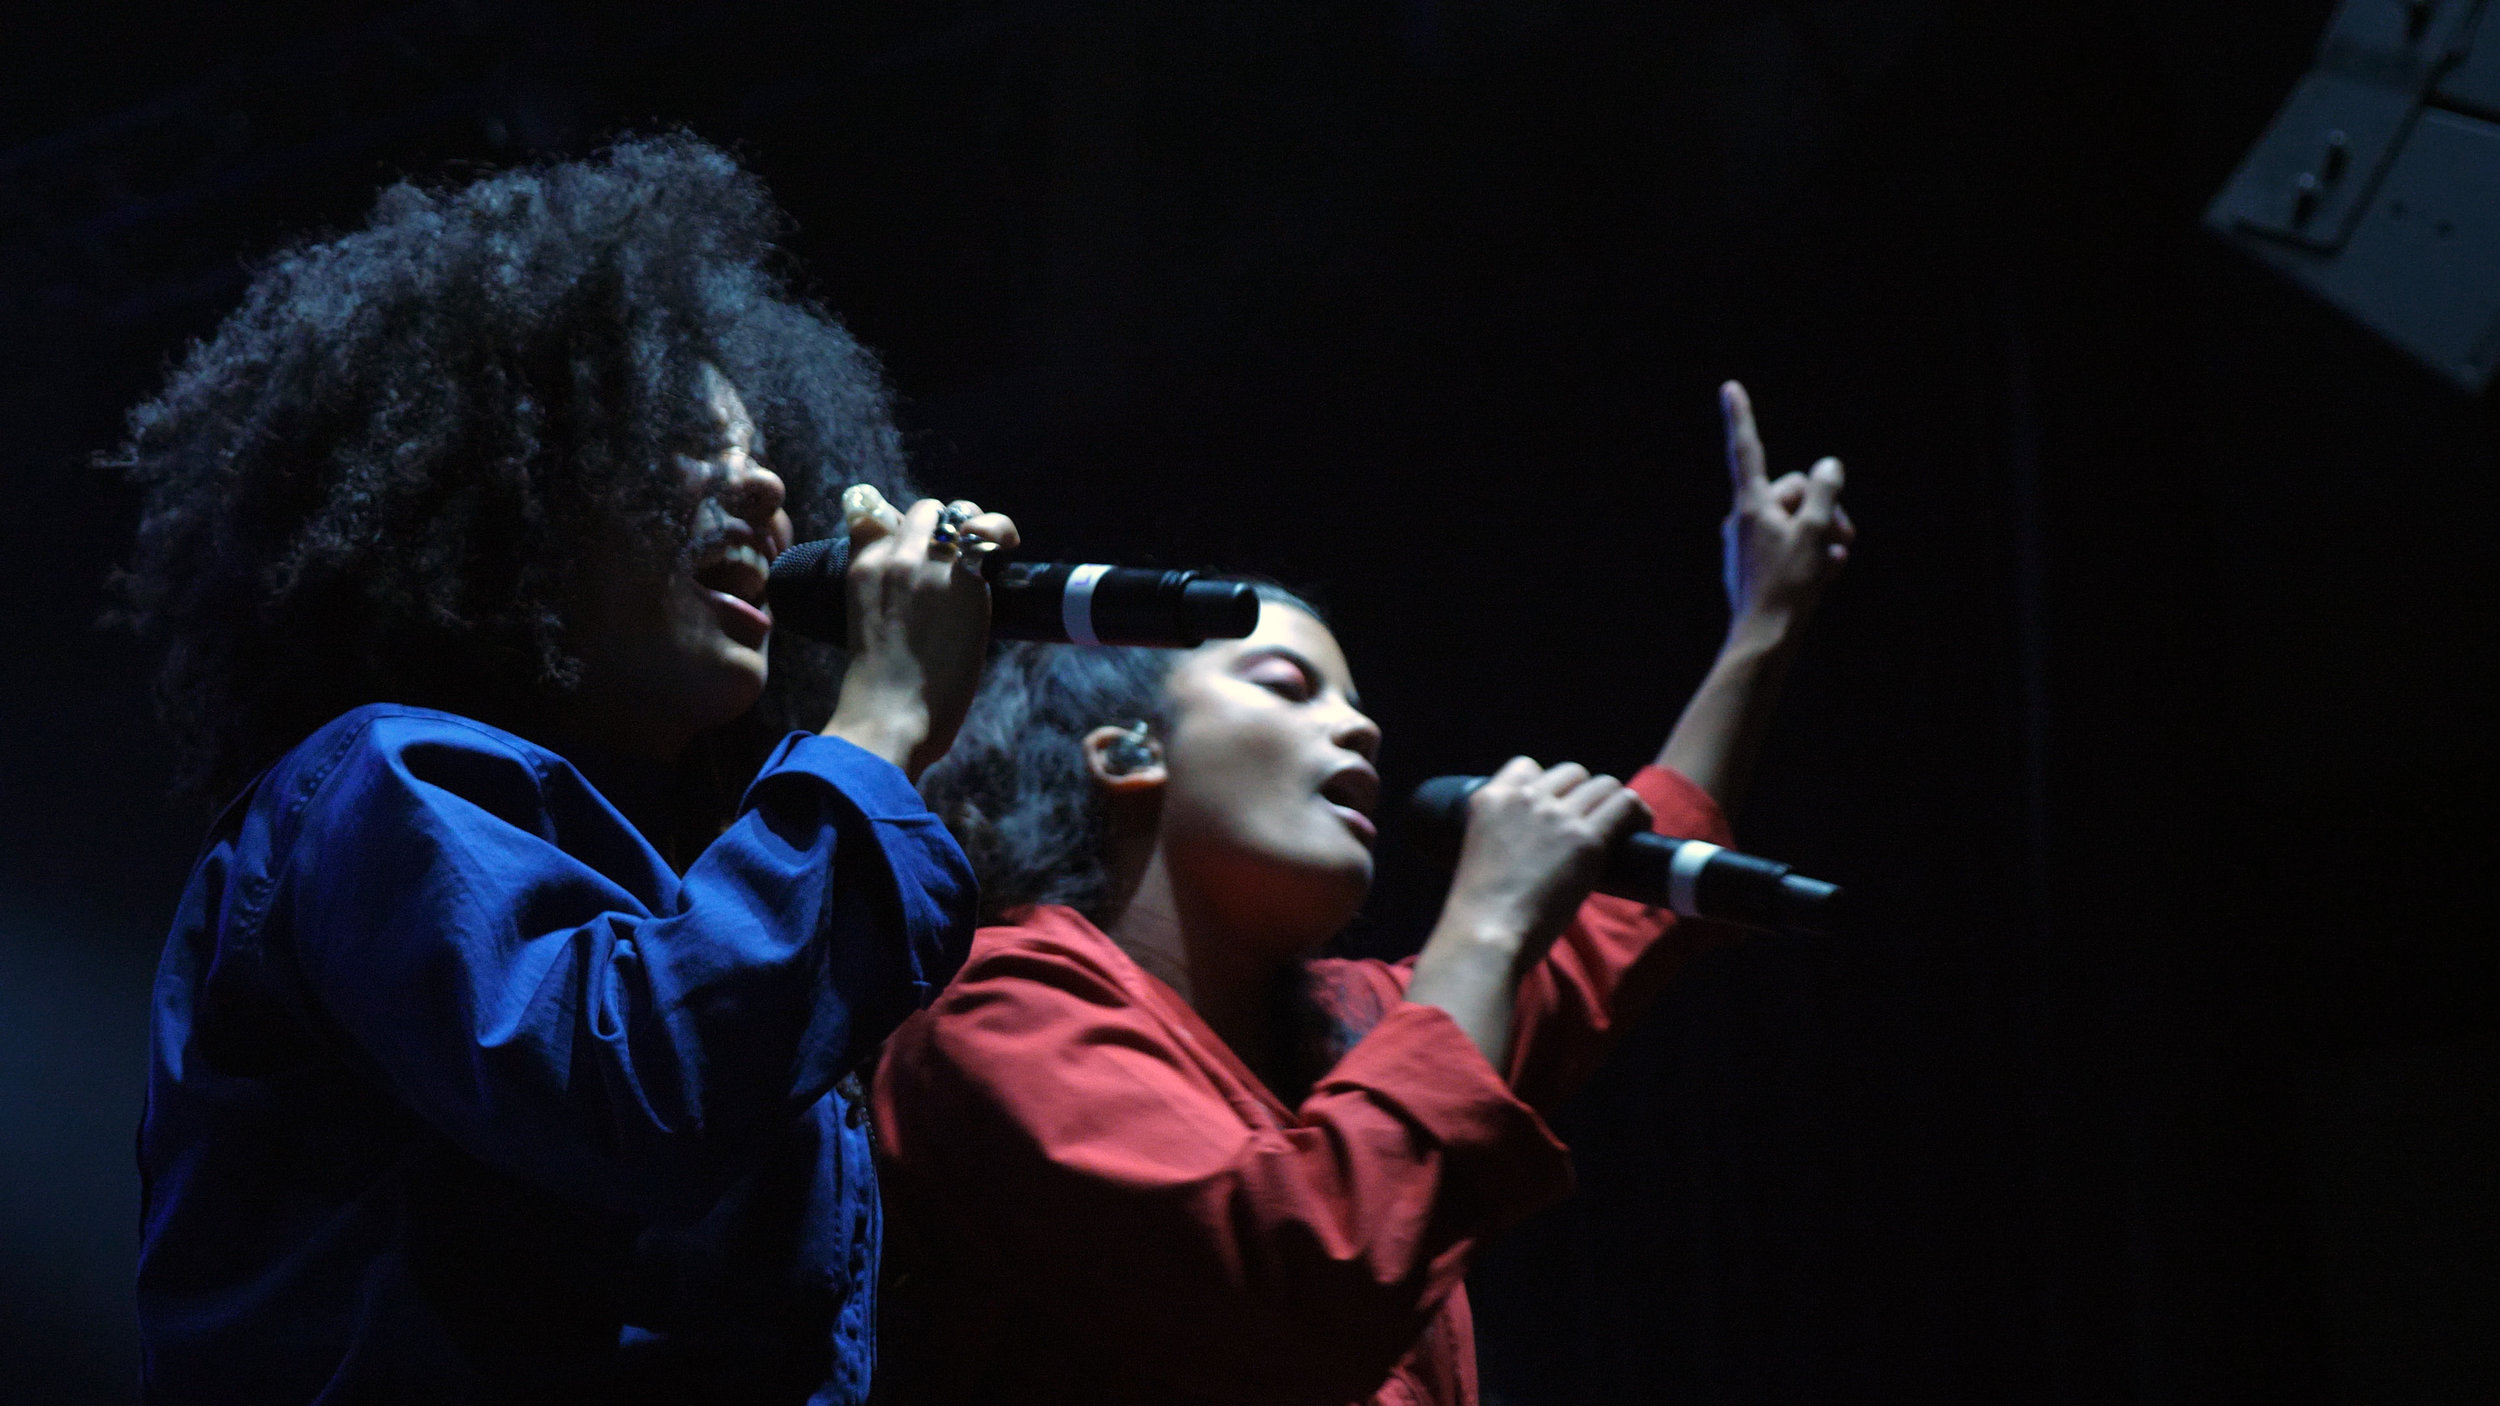 ibeyi - It's when faced with tragedy that we find out who we really are. Naomi and Lisa Diaz's musicality rose from the ashes of loved ones.Season 3, Episode 12